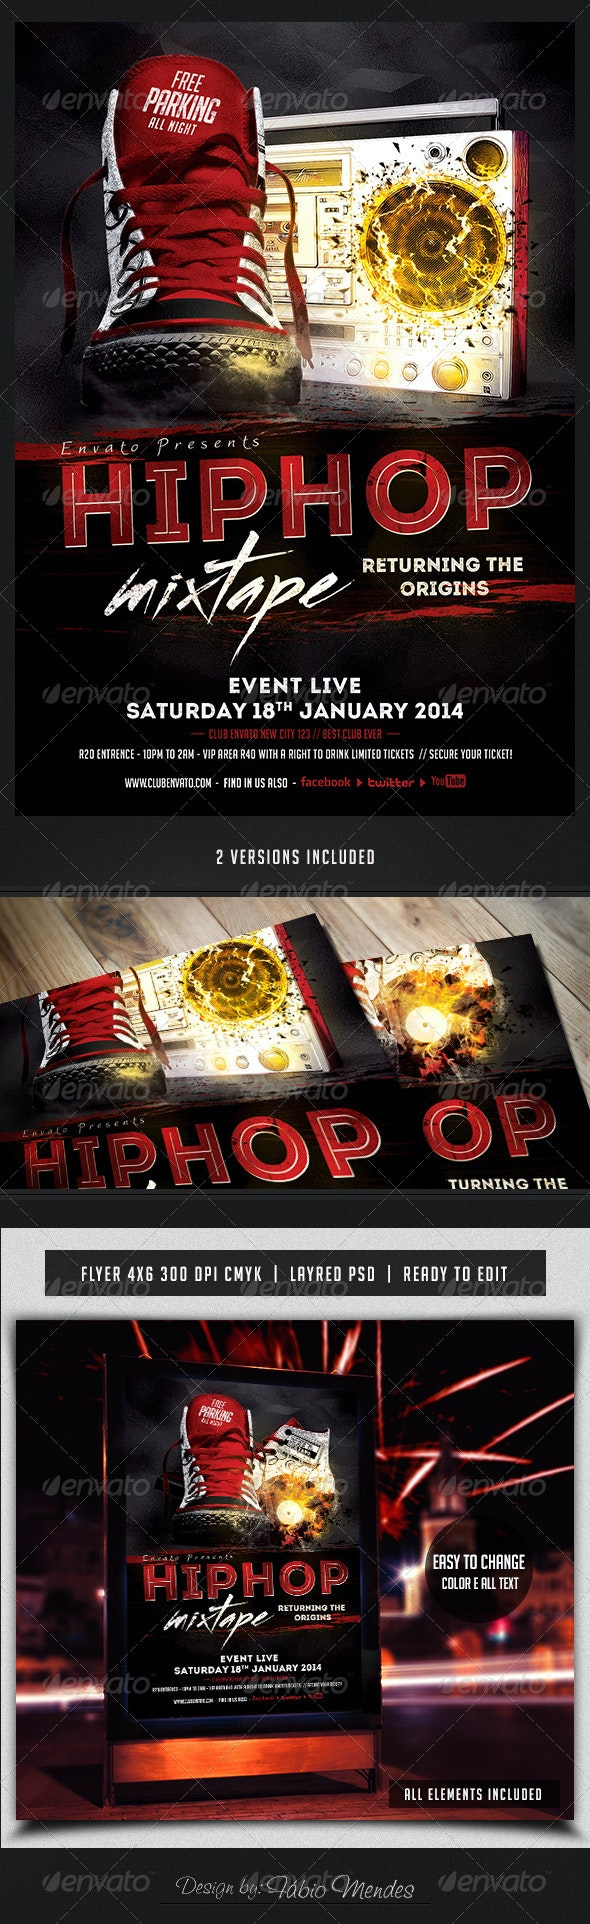 Hip Hop Mixtape Flyer Template - Flyers Print Templates